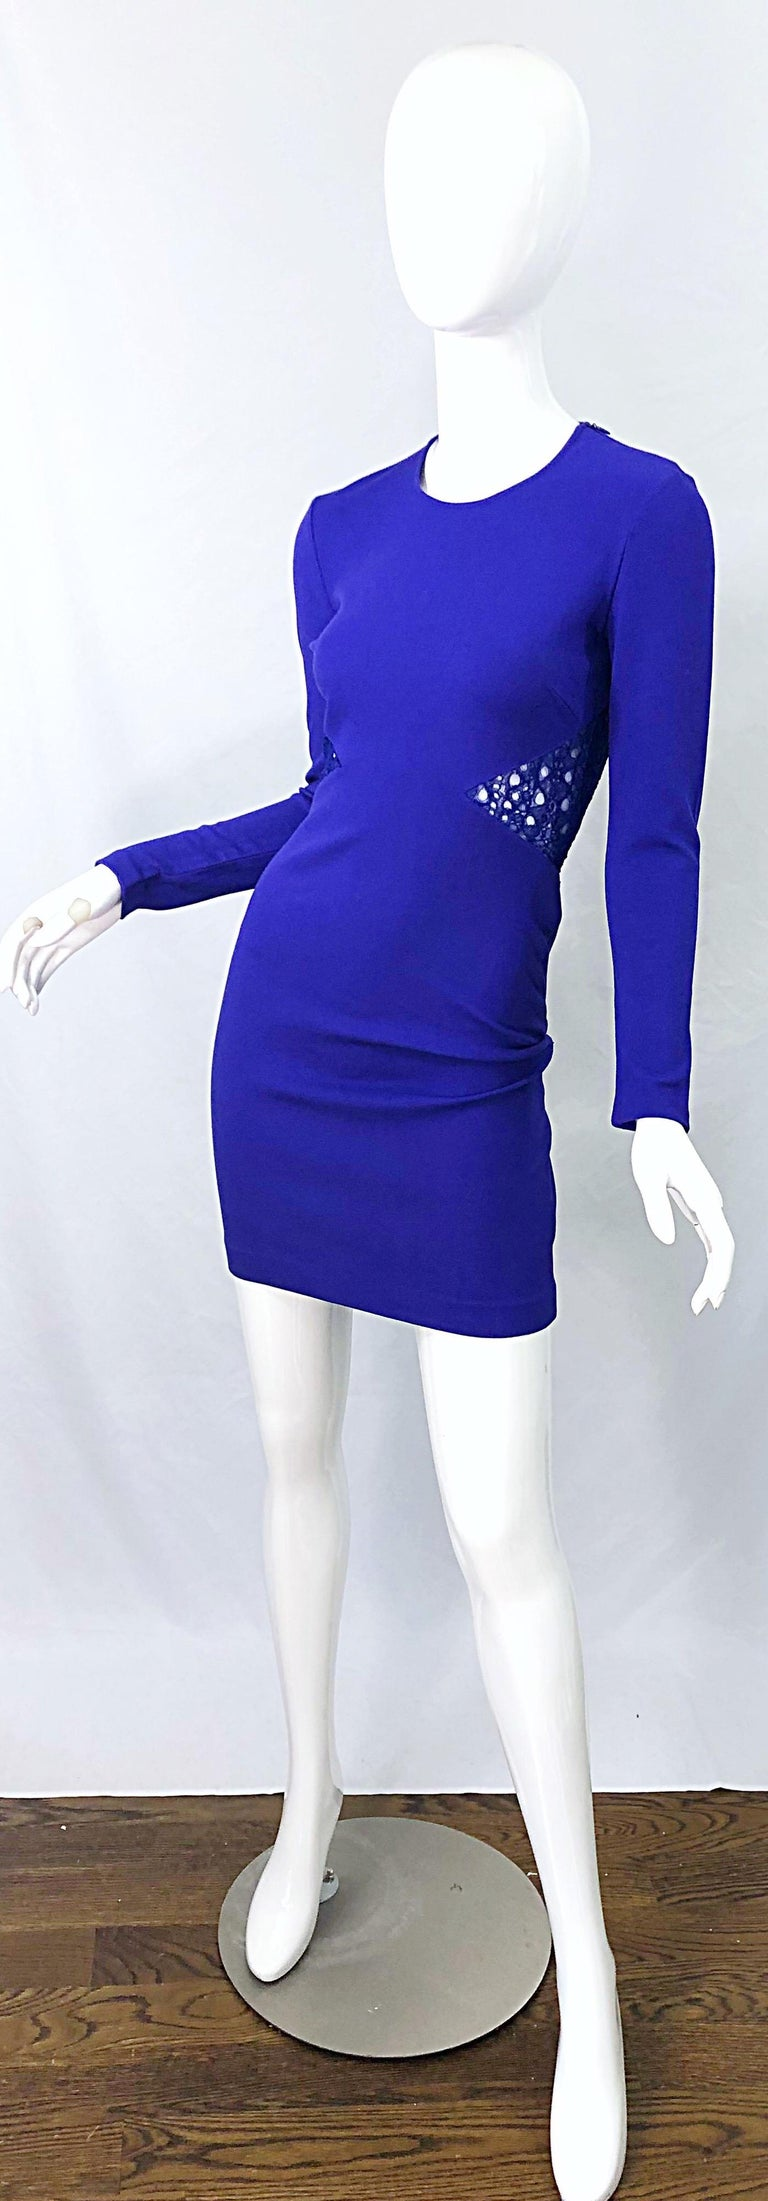 Emilio Pucci Fall 2012 Purple Rayon Lace Cut Out Long Sleeve Bodycon Dress For Sale 5